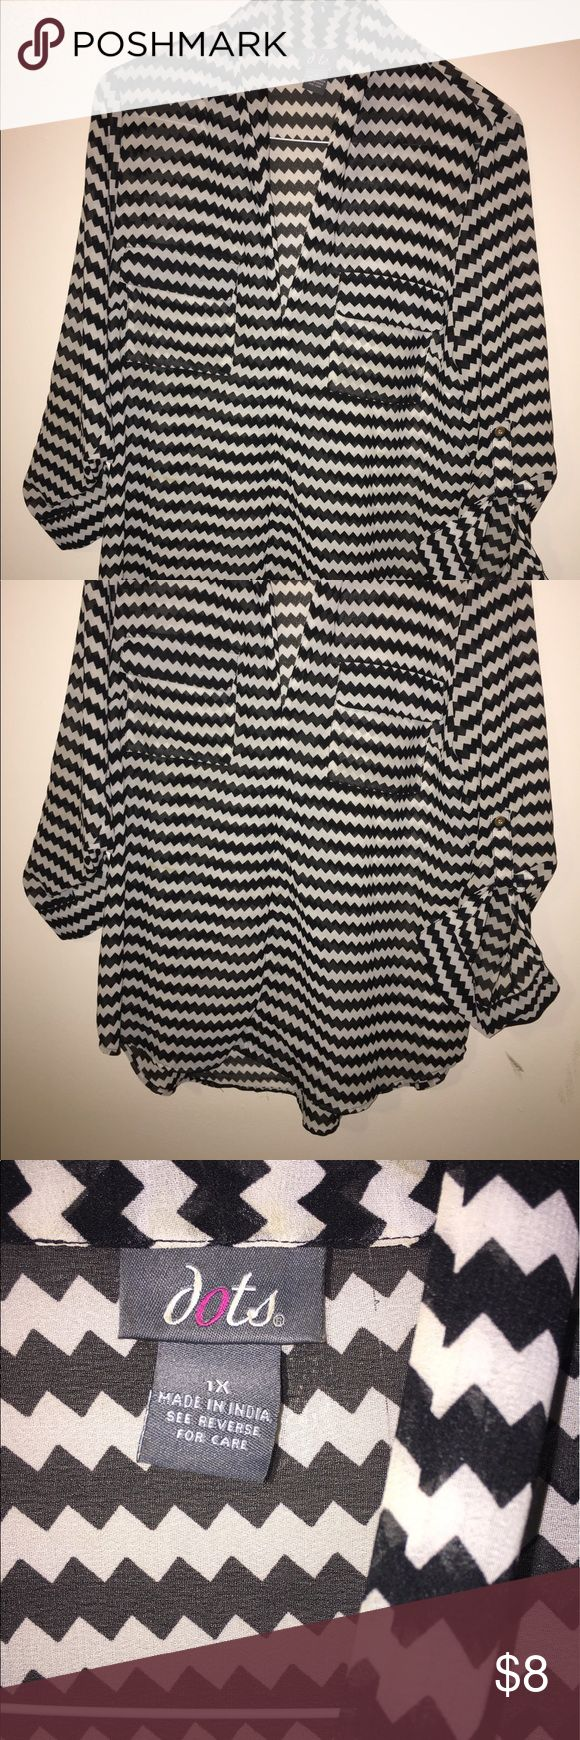 Women's Top Women's Black and white top Tops Blouses